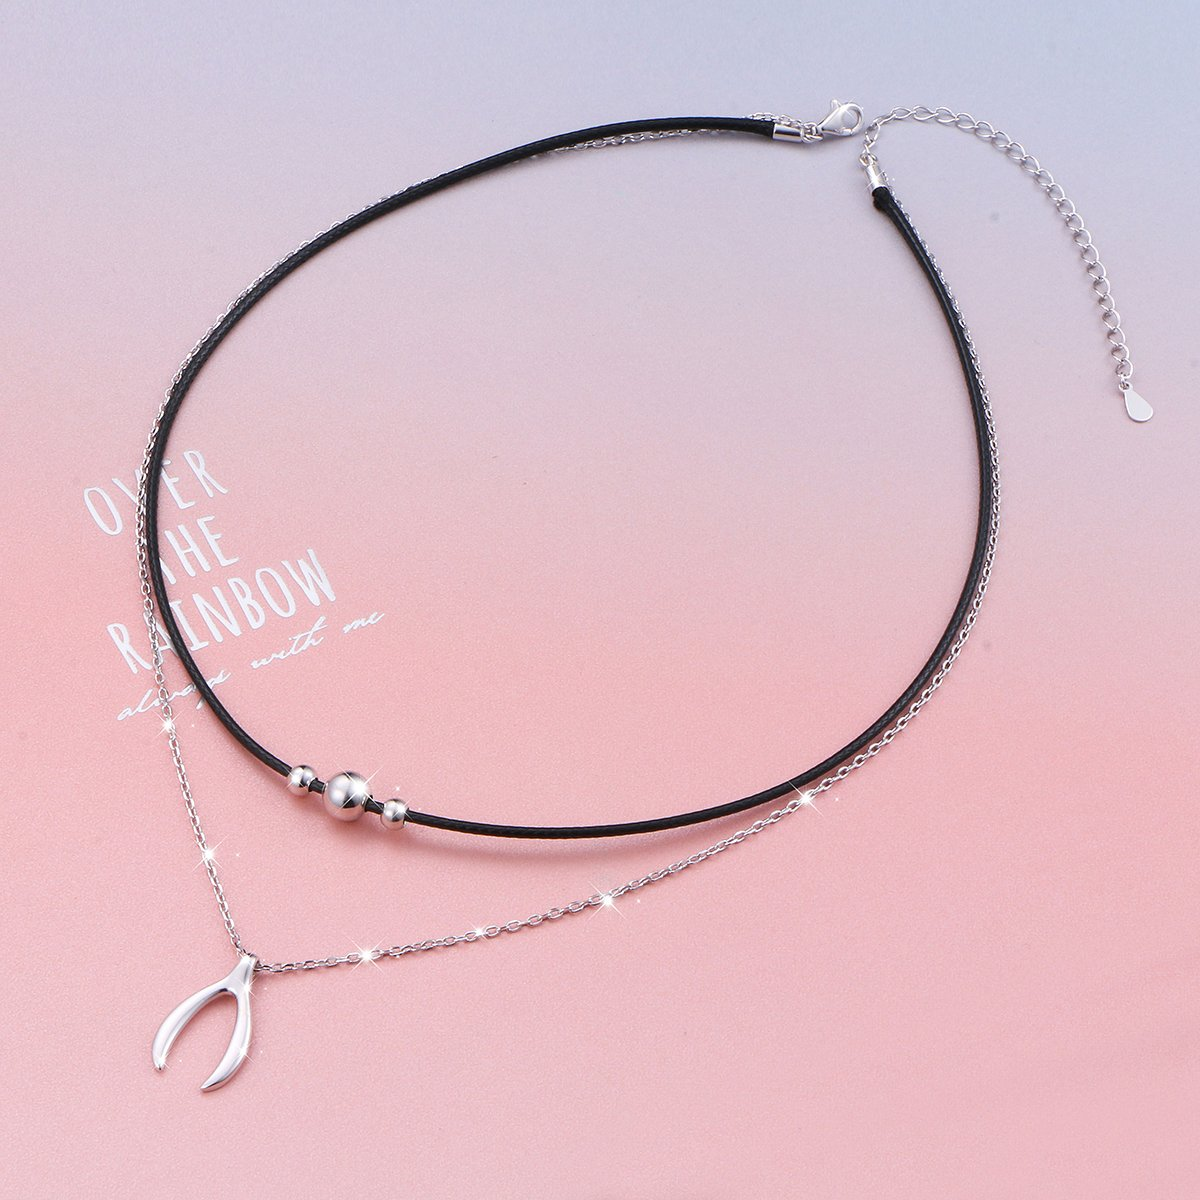 925 Sterling Silver Good Luck Wishbone Bead Charm Choker Necklace Gift for Women by LINLIN FINE JEWELRY (Image #2)